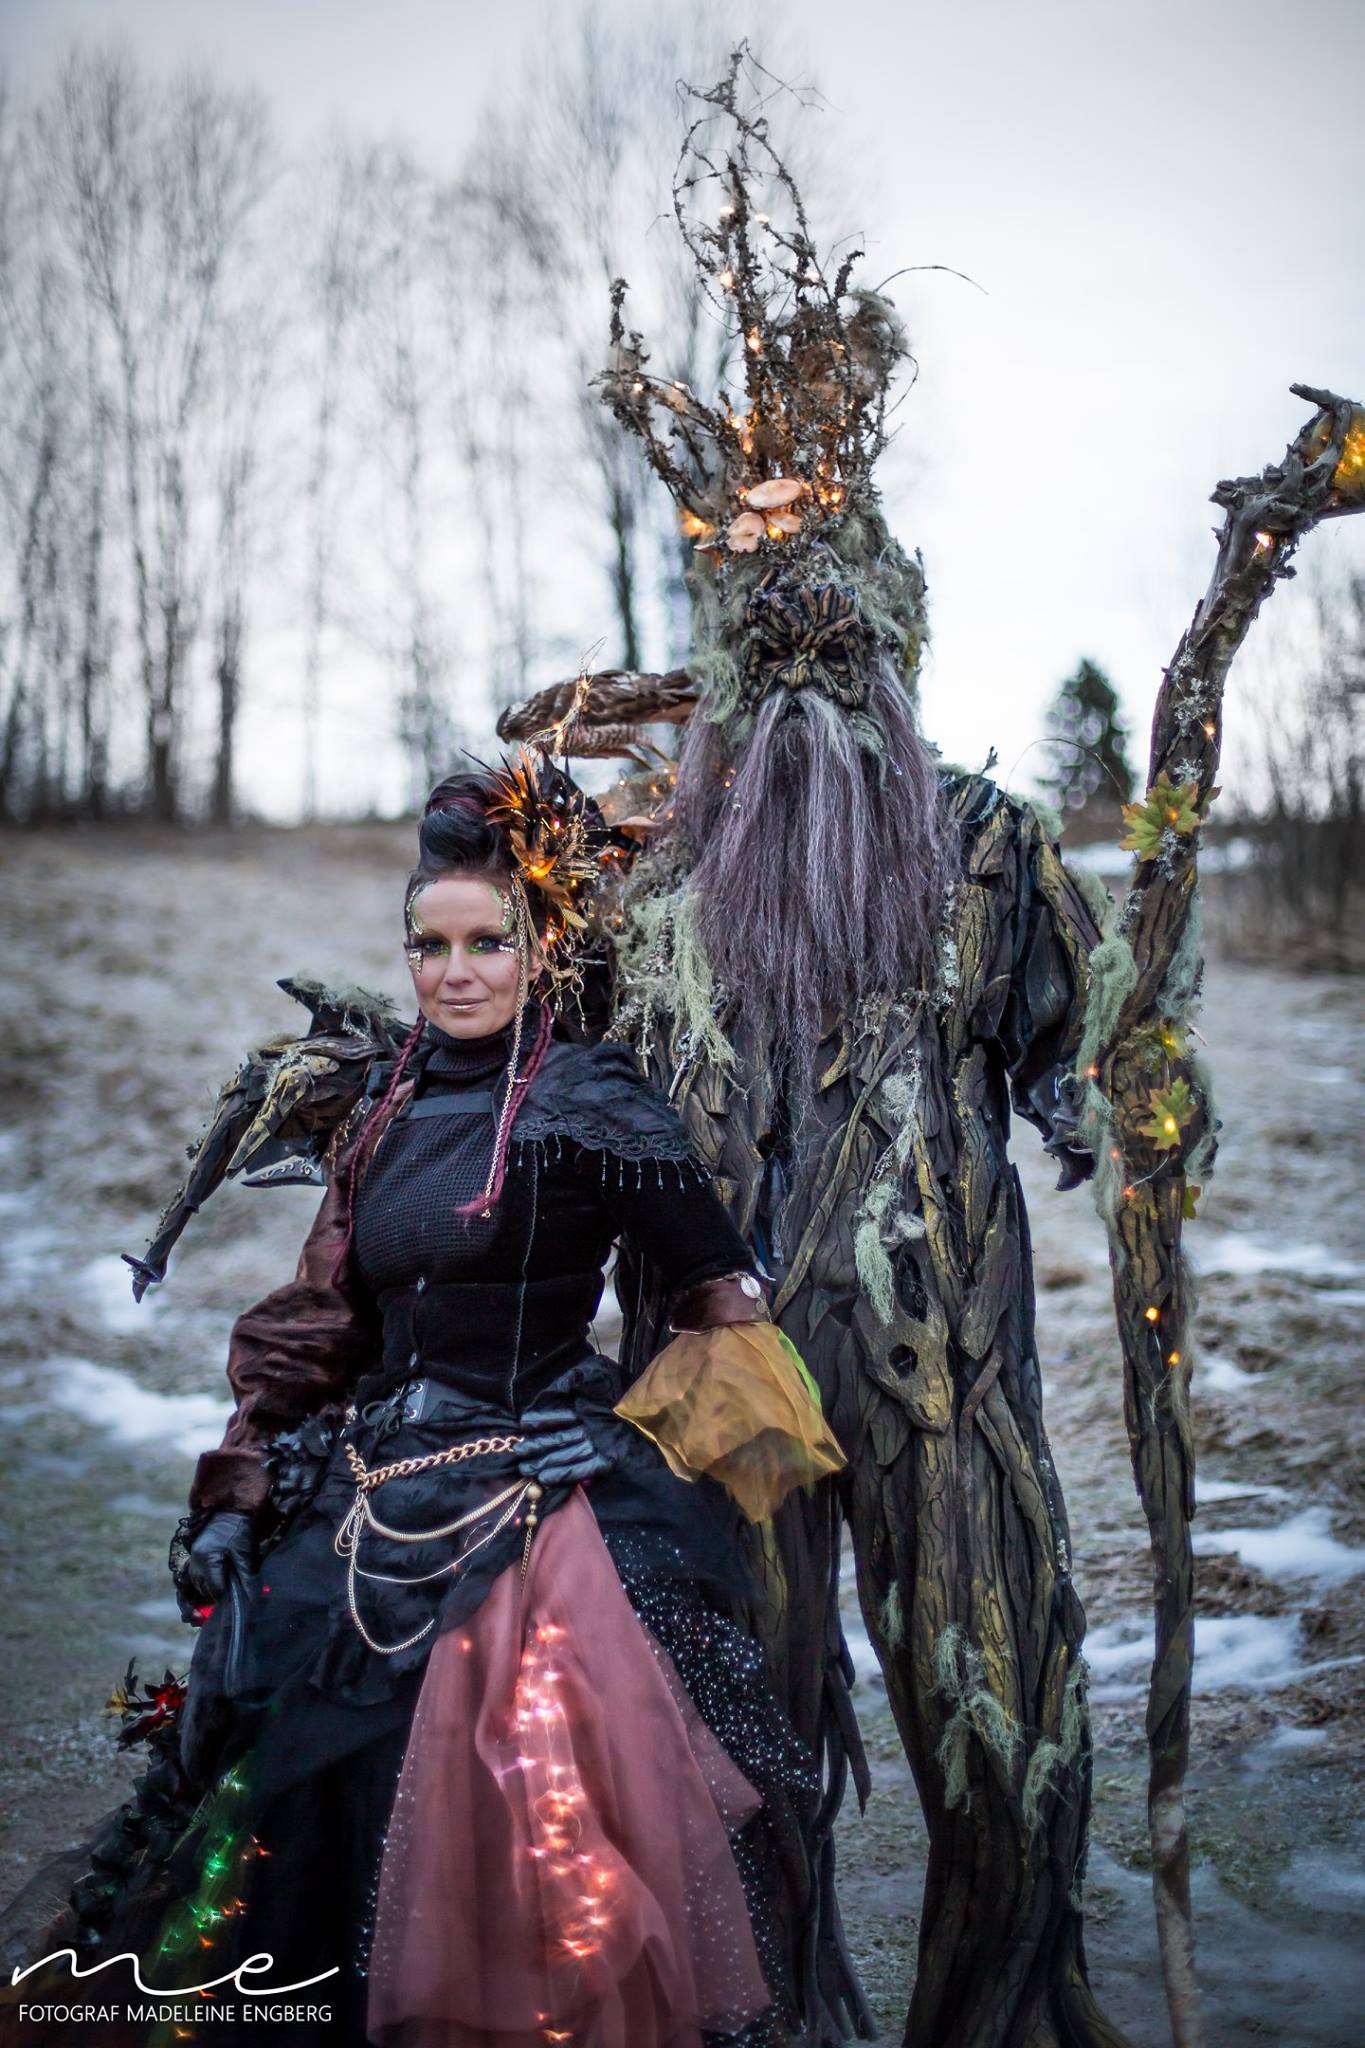 SFX Makeup Artist Petra Shara Stoor with the Ent character she created for the winter festival Midvinterglöd 2016.